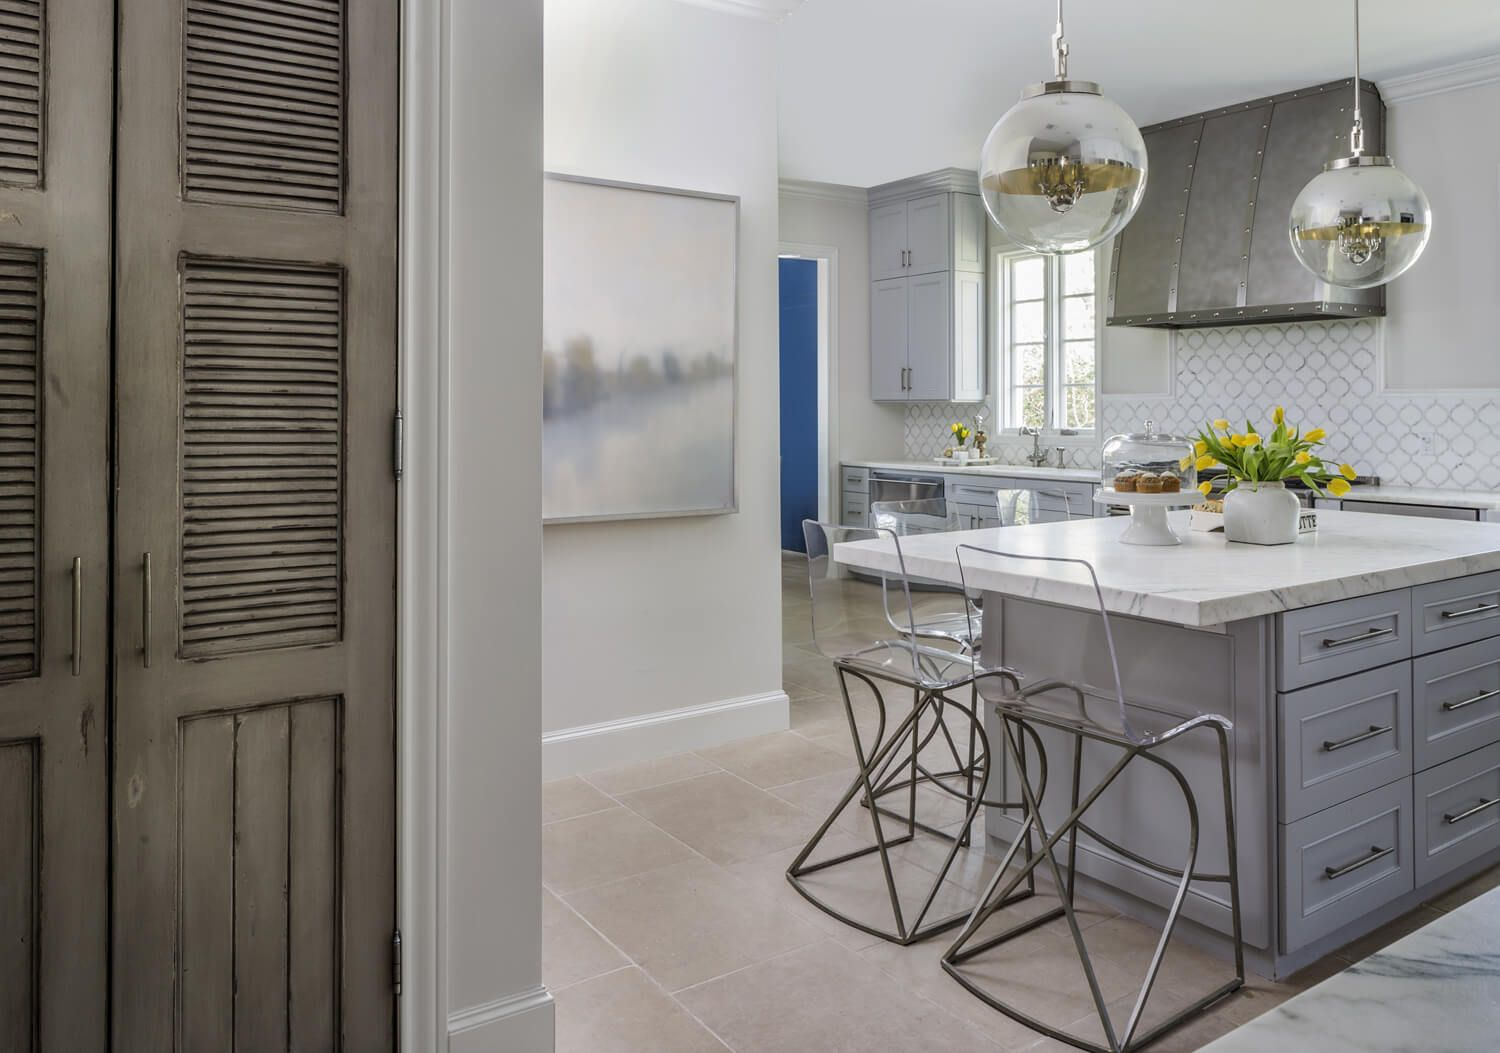 Country Squire Cindy Witmer Designs Interior Design In 2019